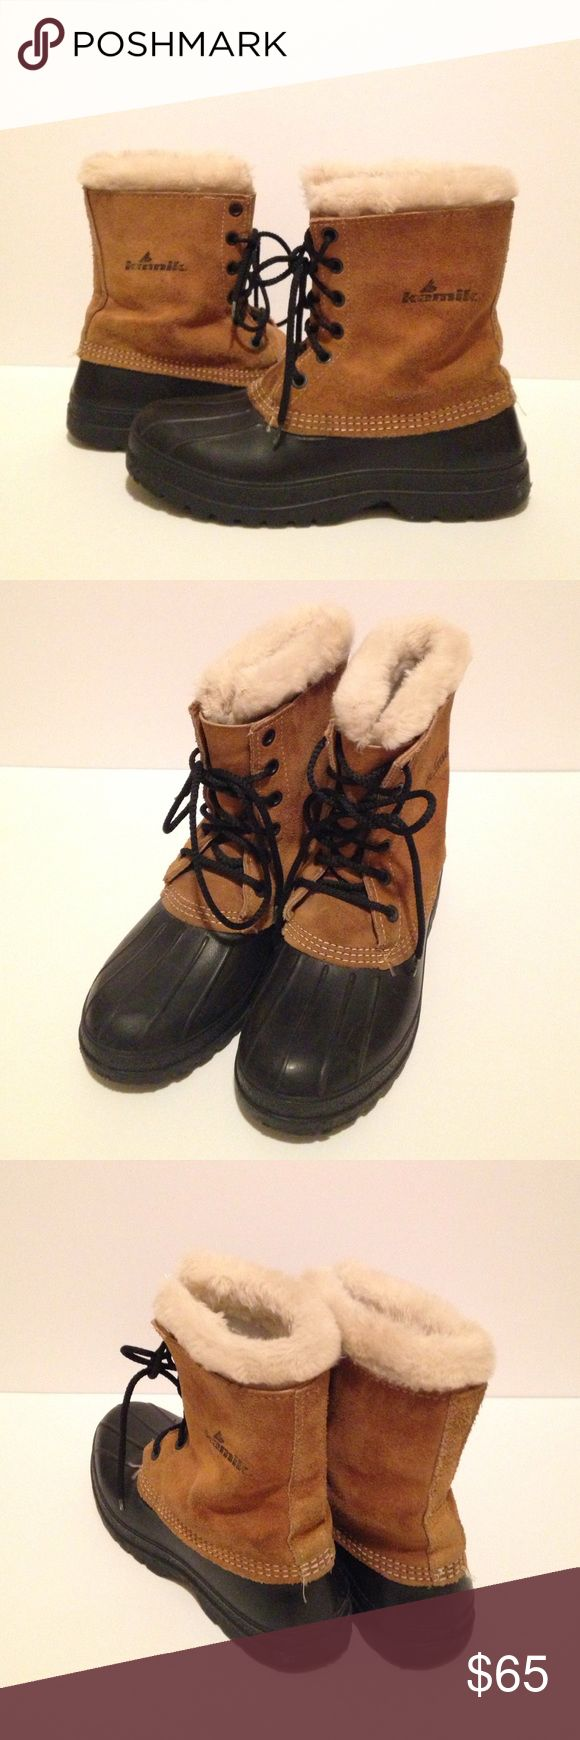 Kamik Winter Snow Boots Kamik made in canada leather snow/winter boots, super warm and comfortable, in great used condition, size 8. Kamik Shoes Winter & Rain Boots